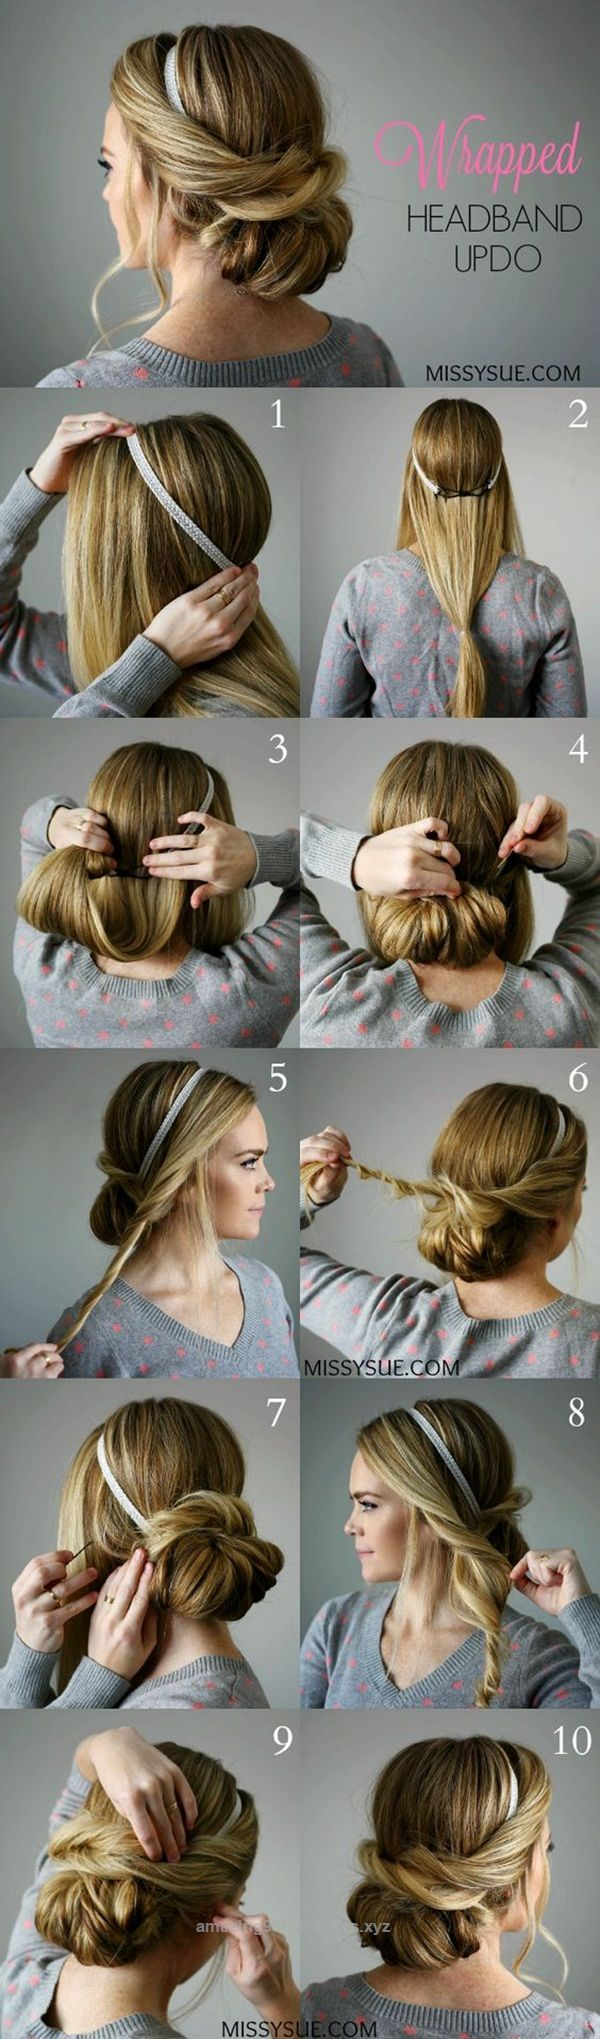 Cool 40 Easy Hairstyles for Schools to Try in 2016    www.barneyfrank.n…   The post  40 Easy Hairstyles for Schools to Try in 2016   www.barneyfrank.n……  appeared first on  Amazing Hairstyle ..